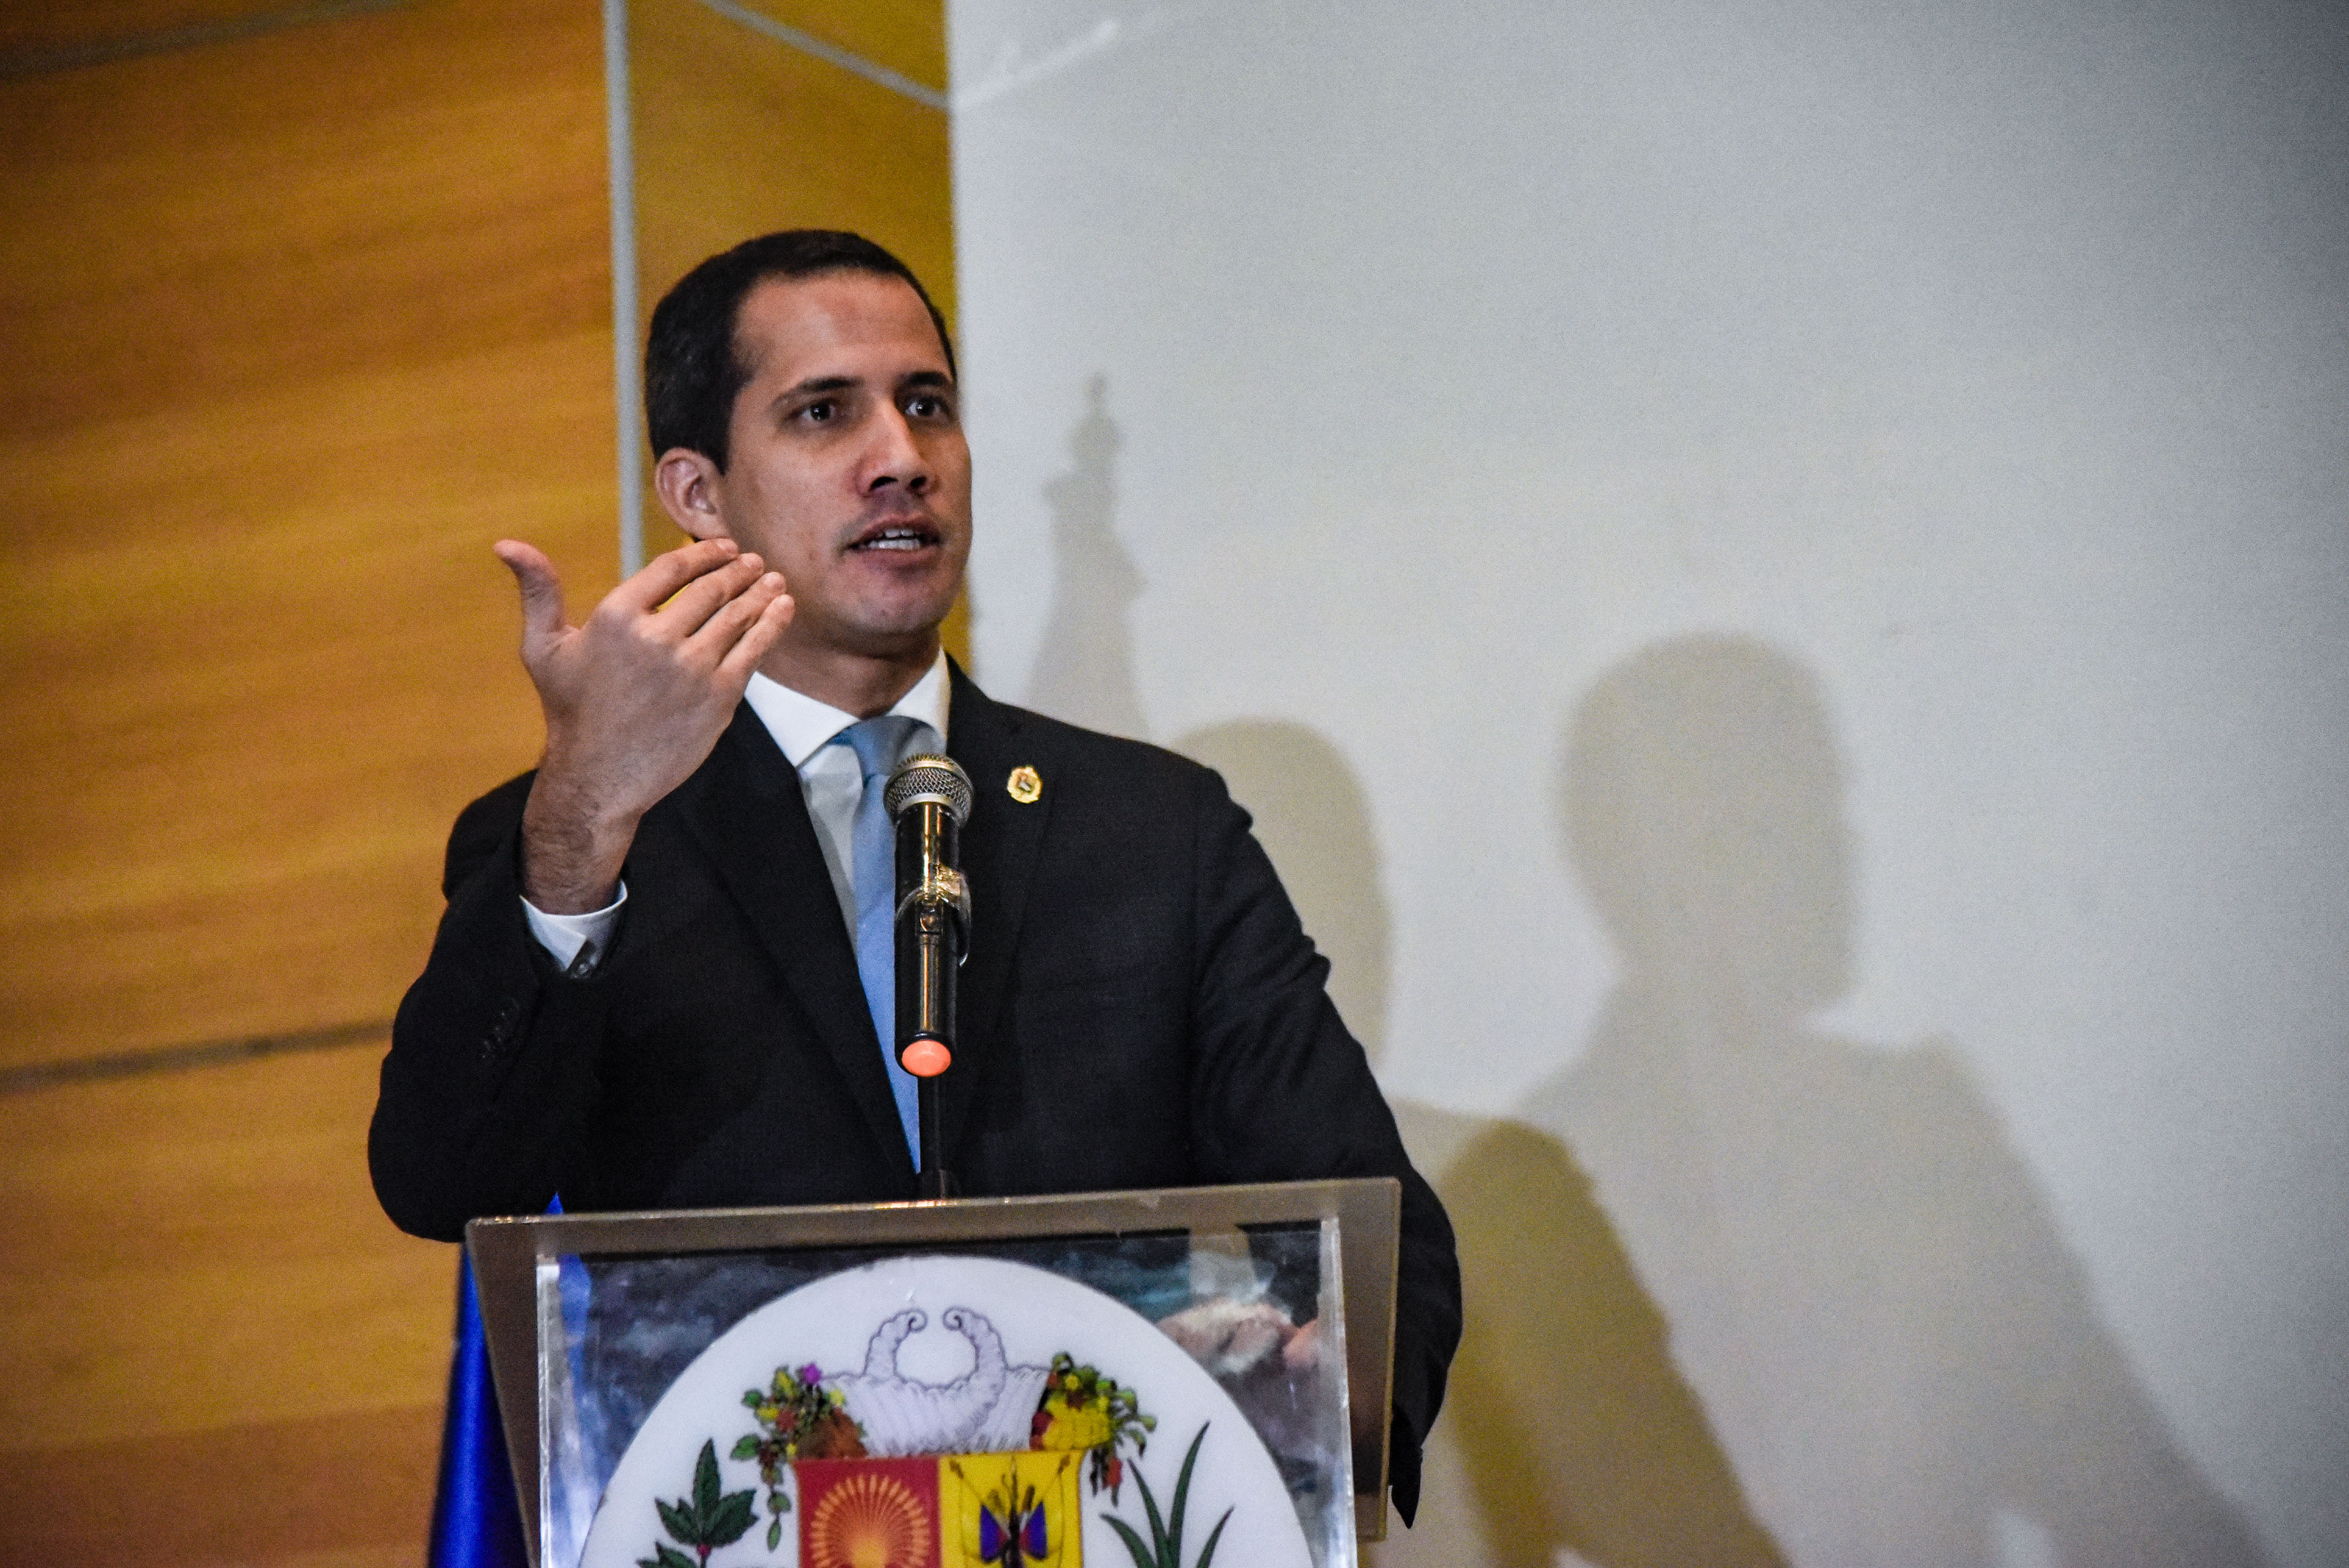 CARACAS, VENEZUELA - FEBRUARY 15: Opposition leader and and reelected president of the National Assembly by anti-Maduro lawmakers majority Juan Guaido speaks during a press conference regarding his International Tour at Centro Letonia on February 15, 2020 in Caracas, Venezuela. Guaido arrived to Venezuela on February 11 amid a chaotic scene at Maiquetia Airport where Pro-Maduro supporters clashed with opposition lawmakers. Guaido travelled to Colombia, Europe, Canada and United States to gain international support for his effort to oust President Nicolas Maduro. (Photo by Carolina Cabral/Getty Images)